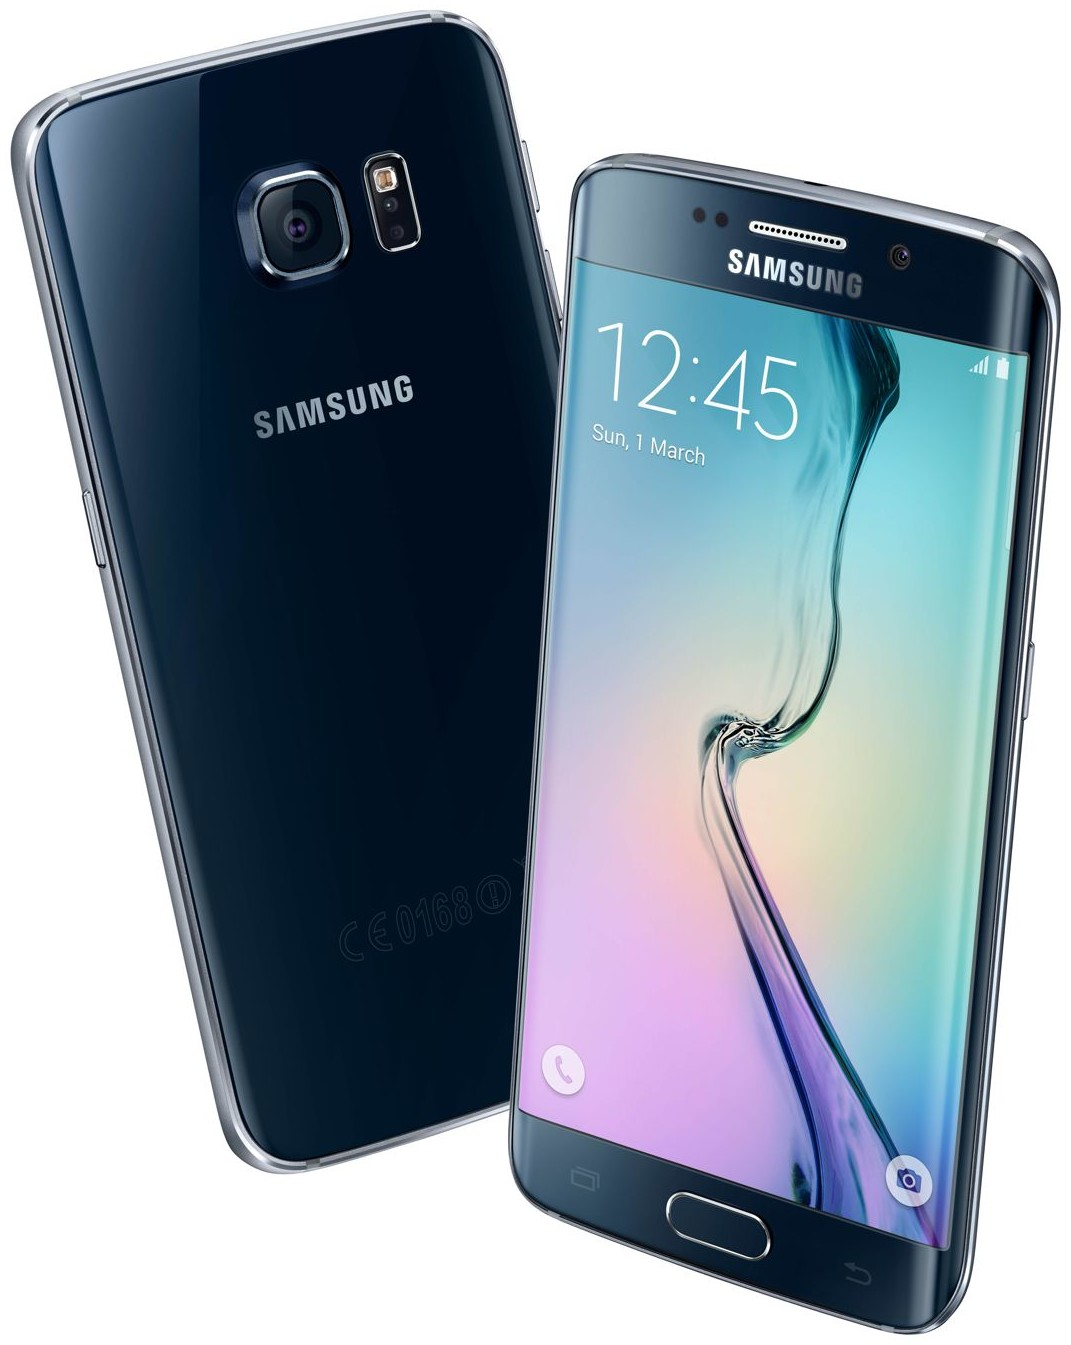 samsung galaxy s6 edge sm g928t 64gb specs and price phonegg. Black Bedroom Furniture Sets. Home Design Ideas